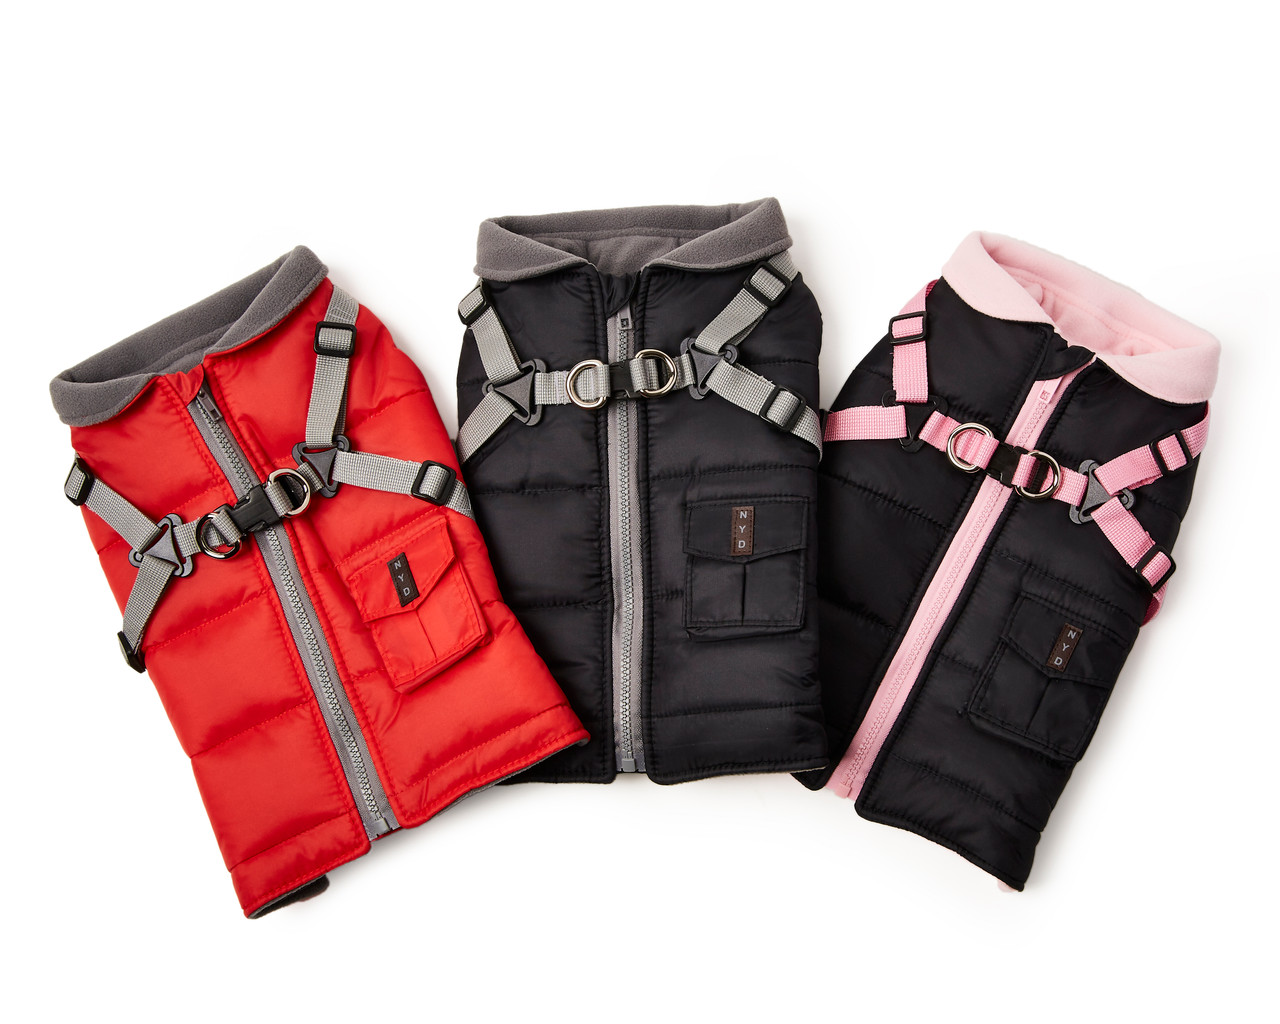 NYD Harness Coat in 3 colors: red/gray, black/gray, black/pink